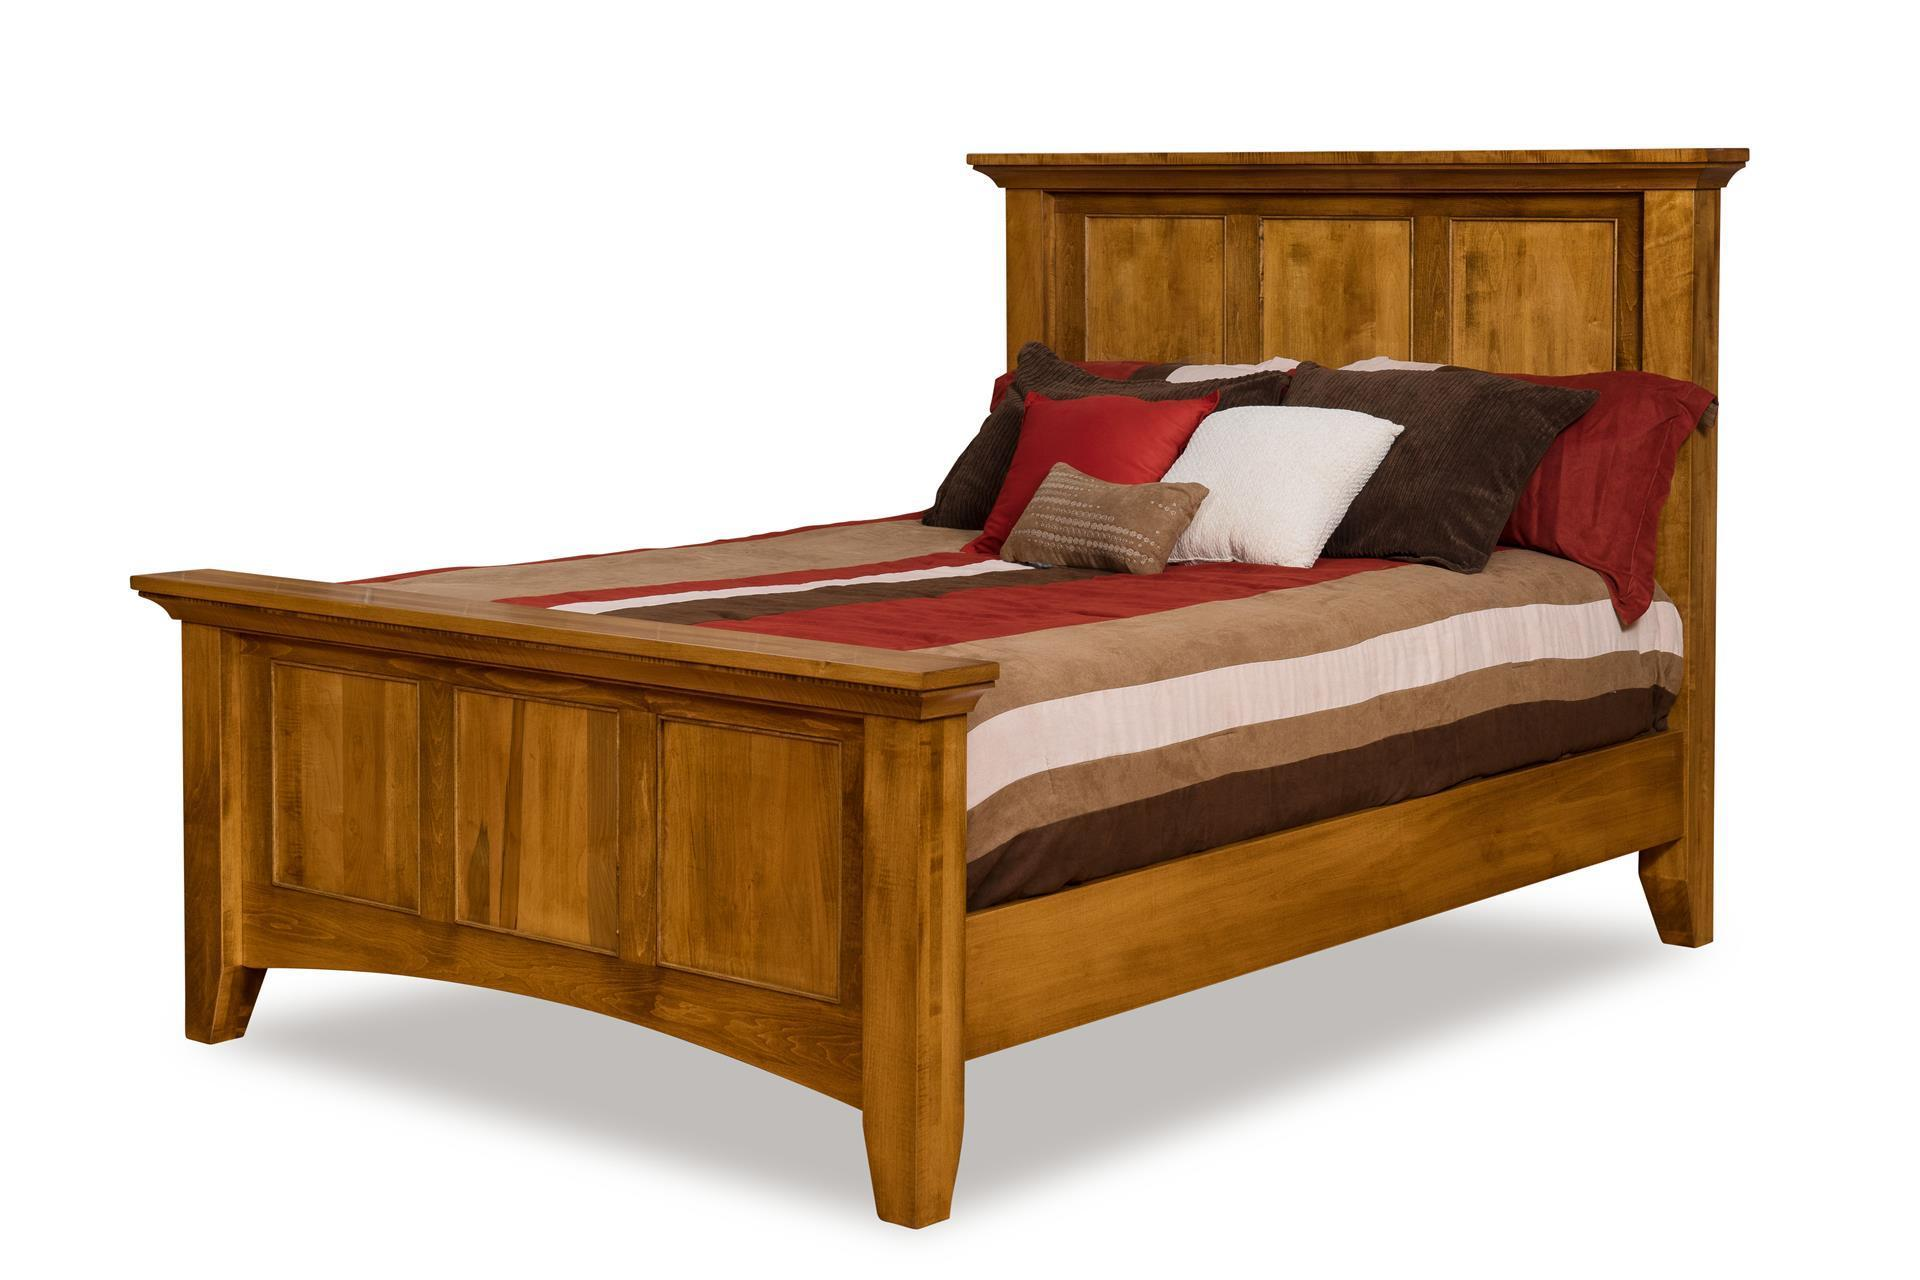 Sleep Concepts Mattress Futon Factory Amish Rustics: Legacy Mission Panel Bed From DutchCrafter Amish Furniture